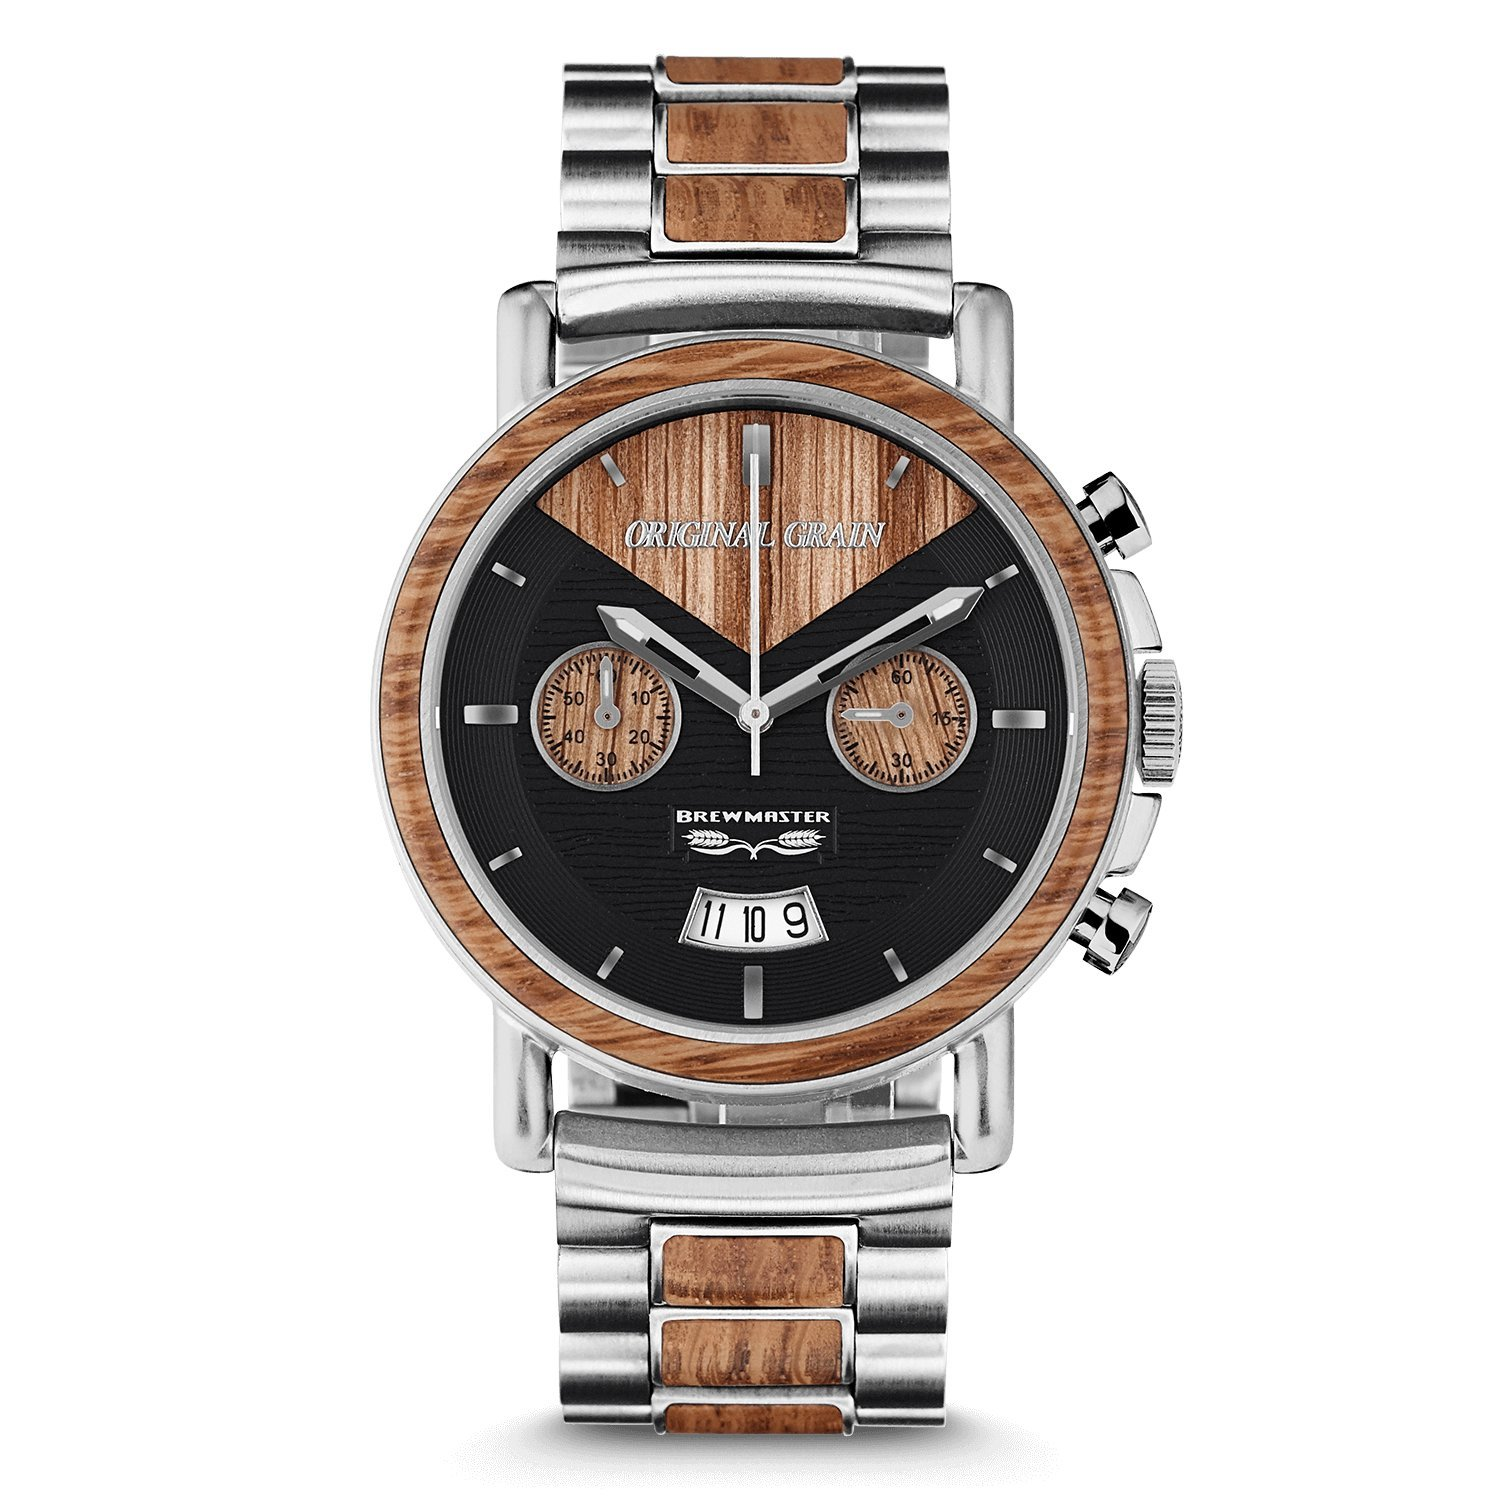 Original Grain Wood Wrist Watch | Brewmaster Collection 44MM Chronograph Watch | Wood And Stainless Steel Watch Band | Japanese Quartz Movement | German Oak Beer Barrel Wood